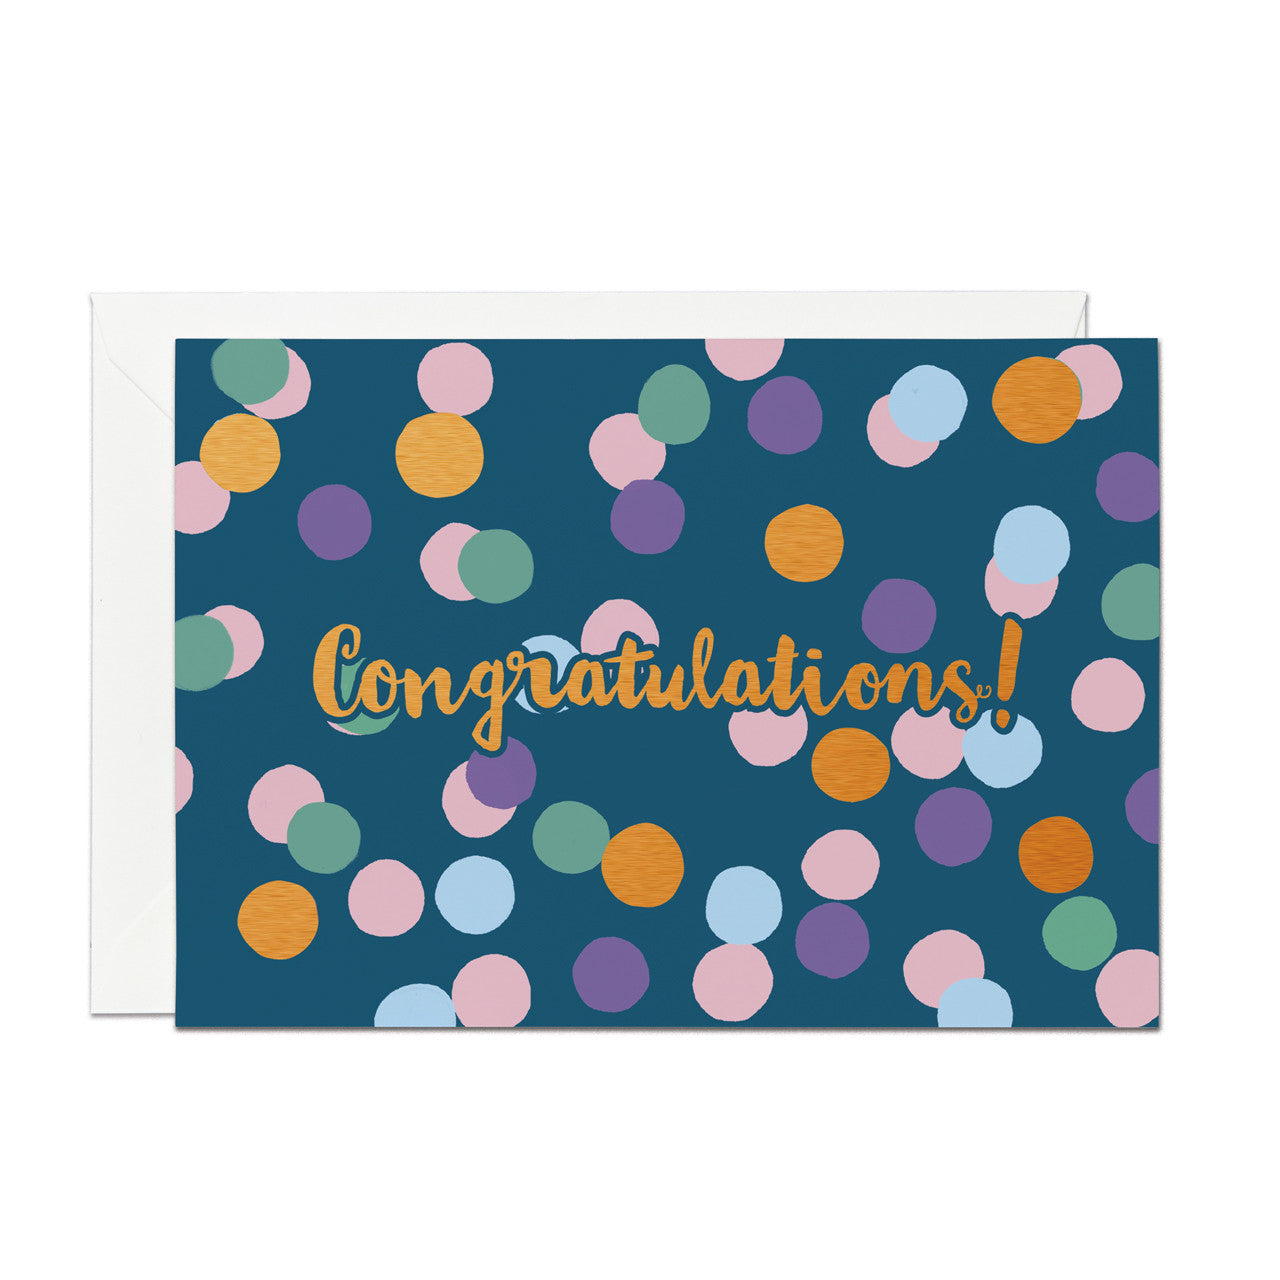 Congratulations- Copper Foil greeting card (PACK OF 6)